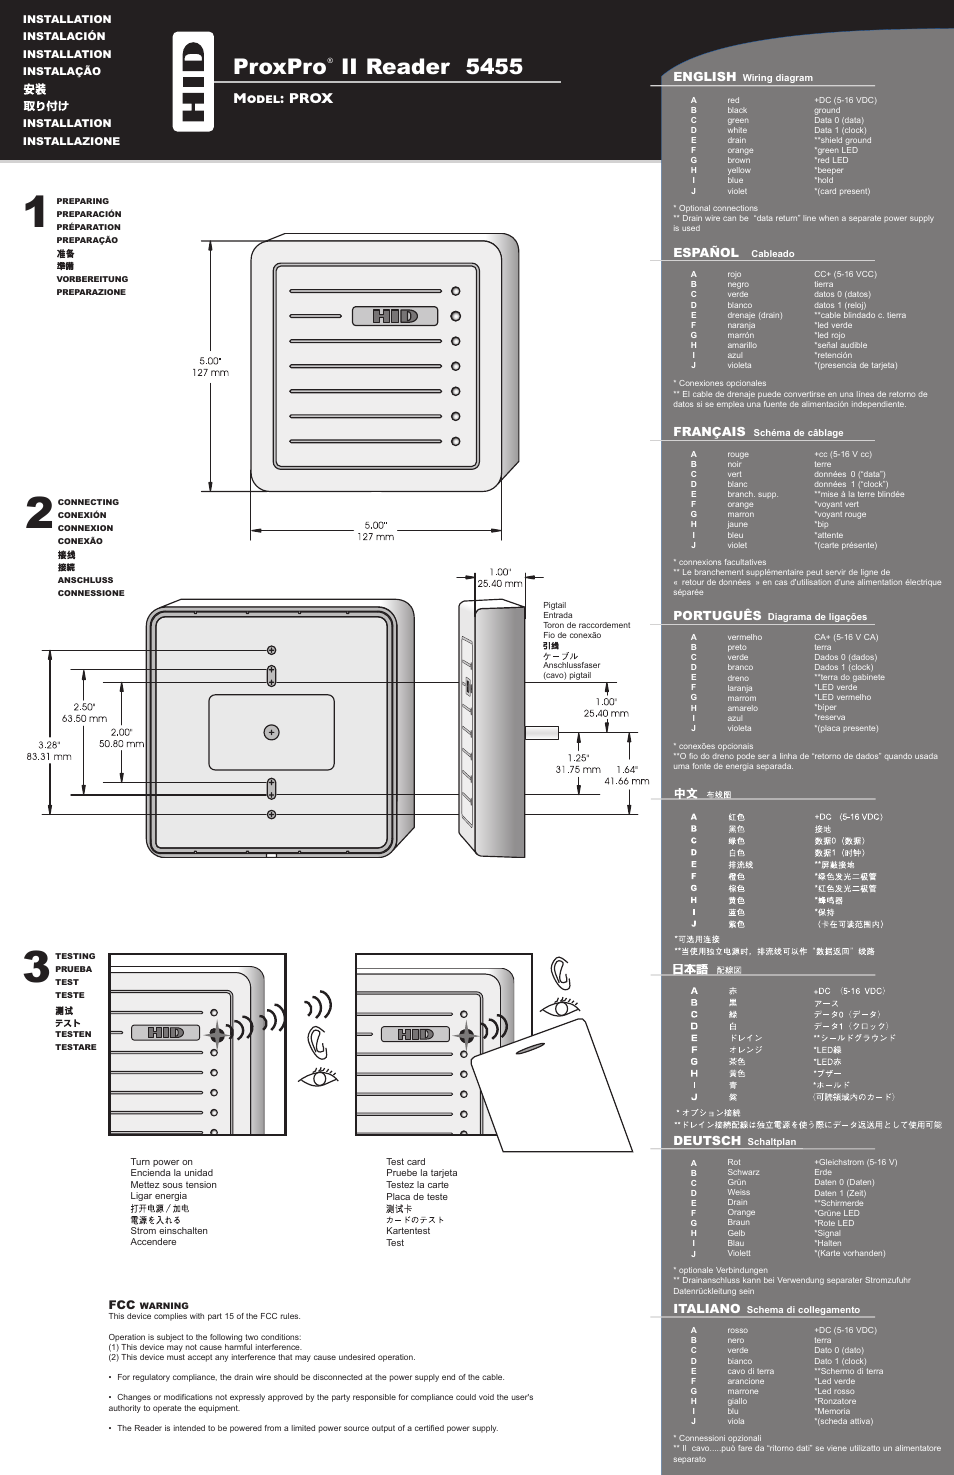 Hid Wiring Diagram Without Beeper 33 Images Relay Free Download Schematic Proxpro Ii Installation Guide Page1 User Manual 2 Pages